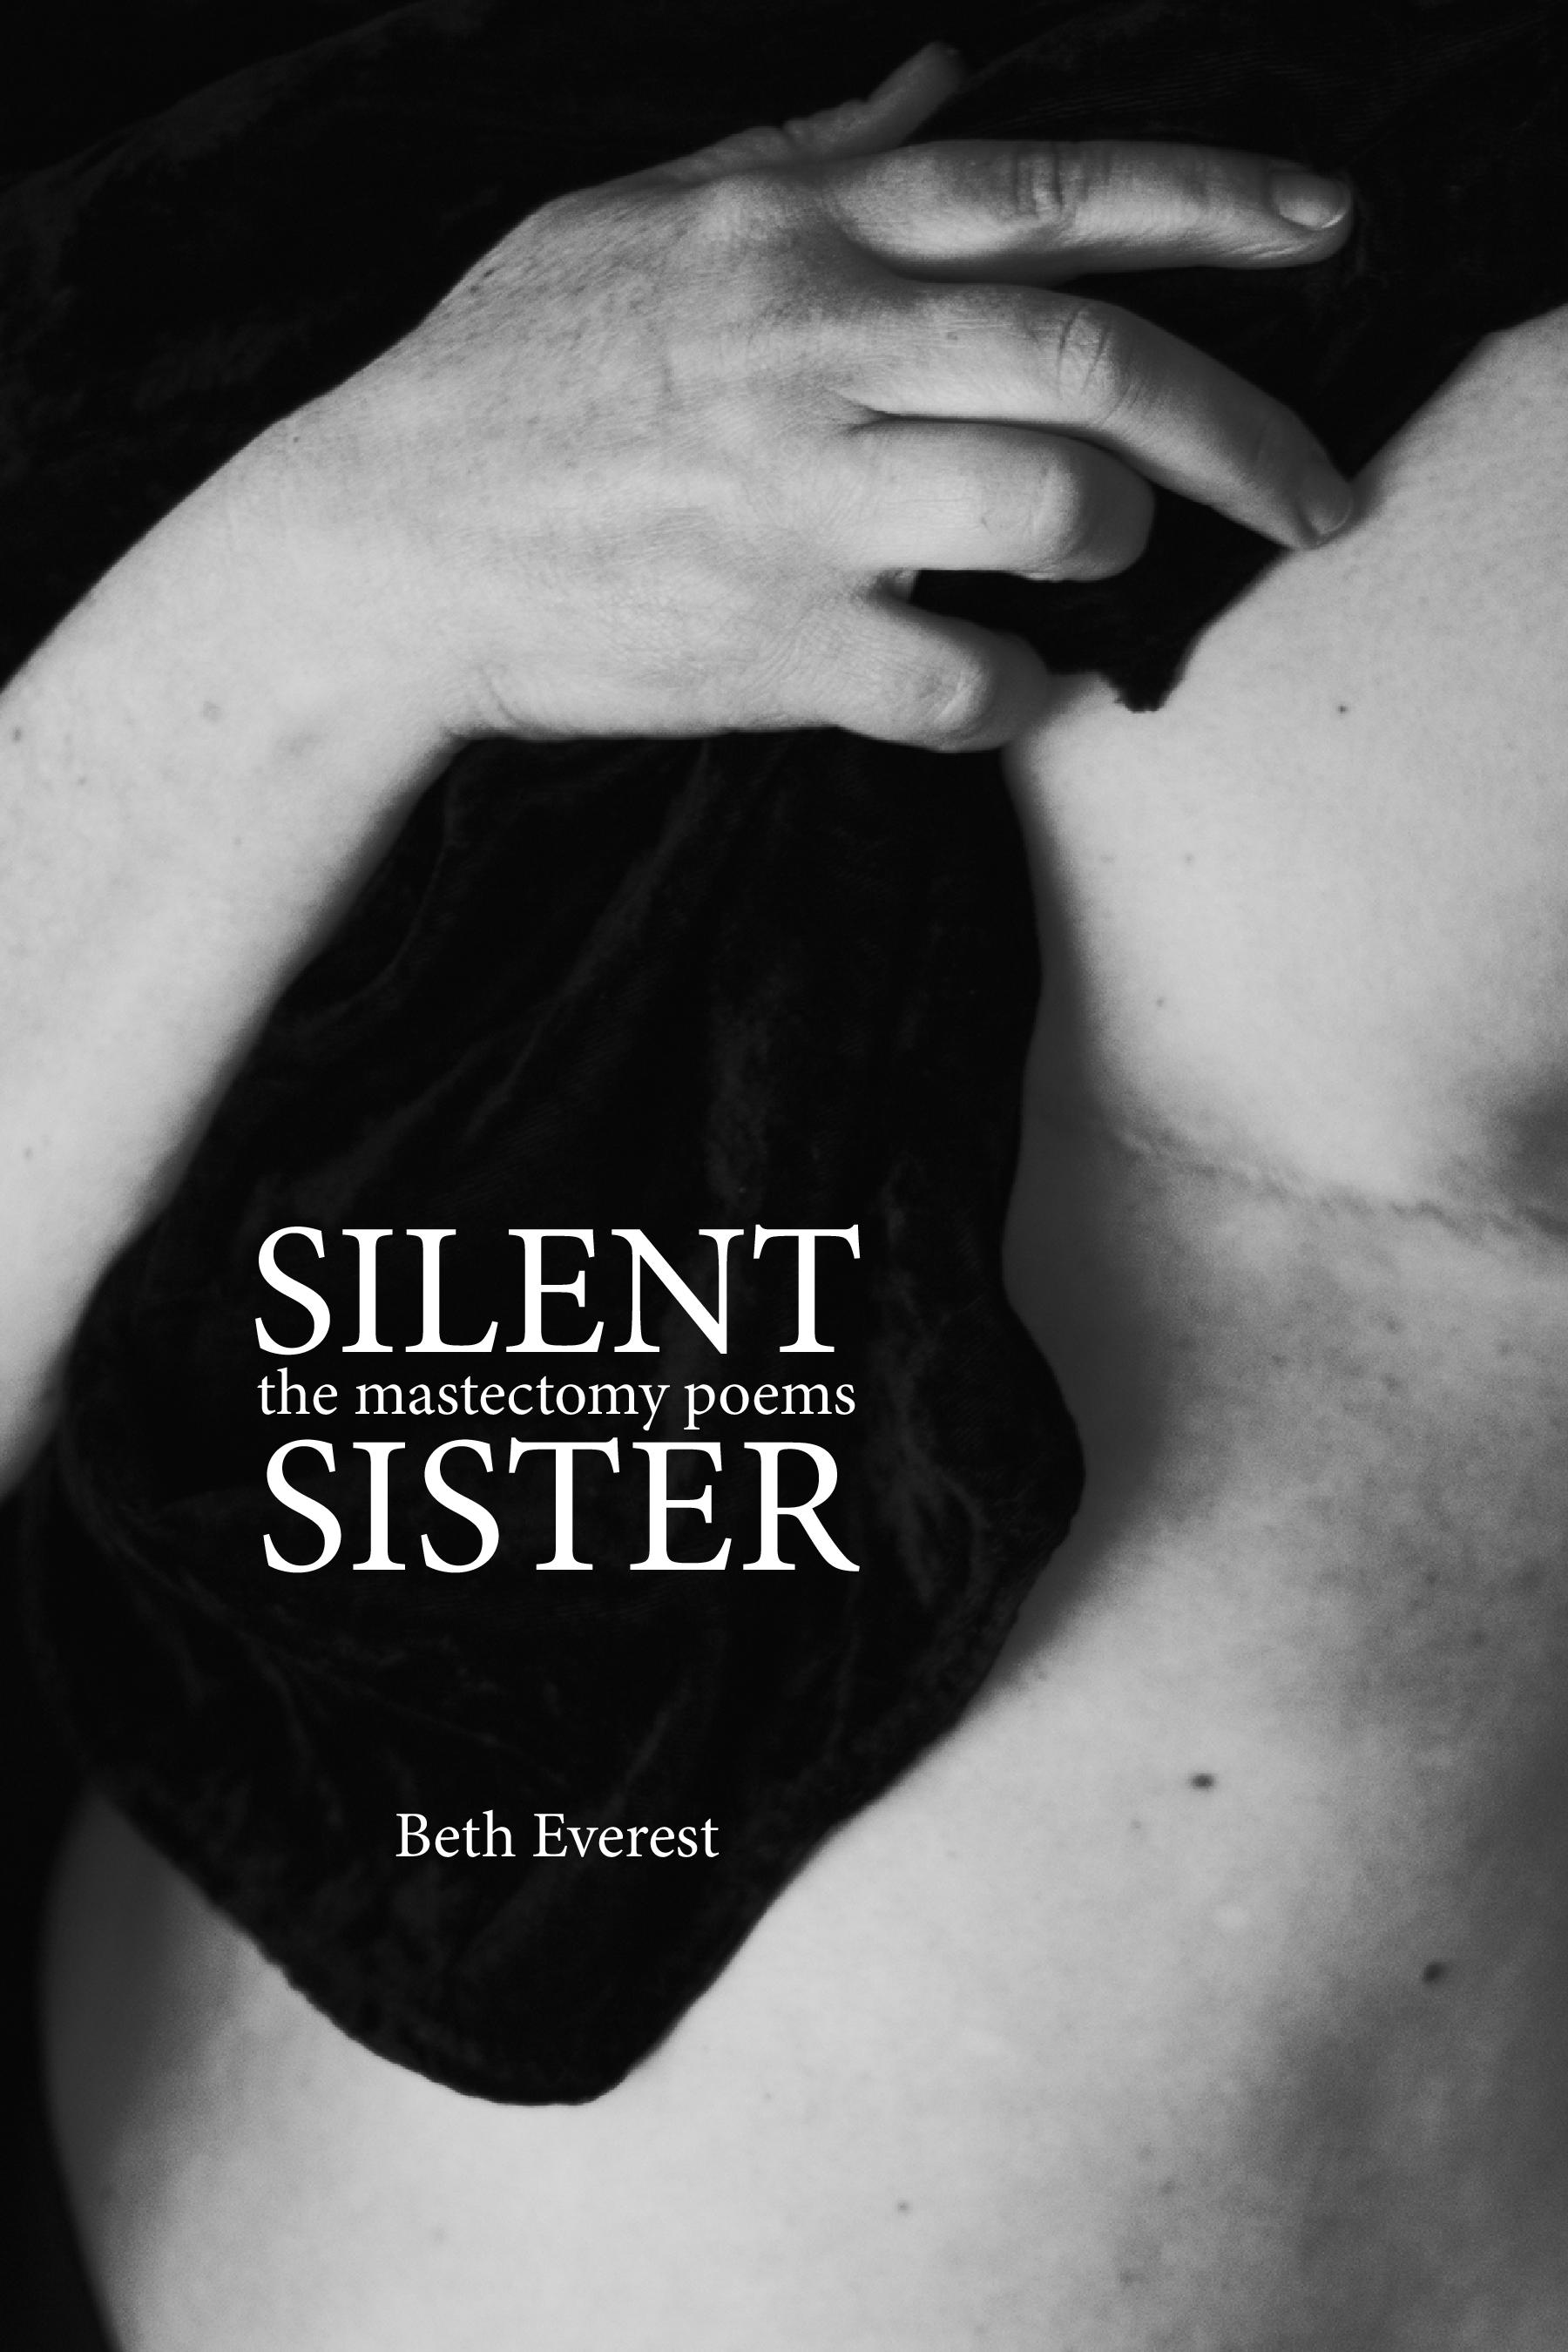 silent sister: the mastectomy poems